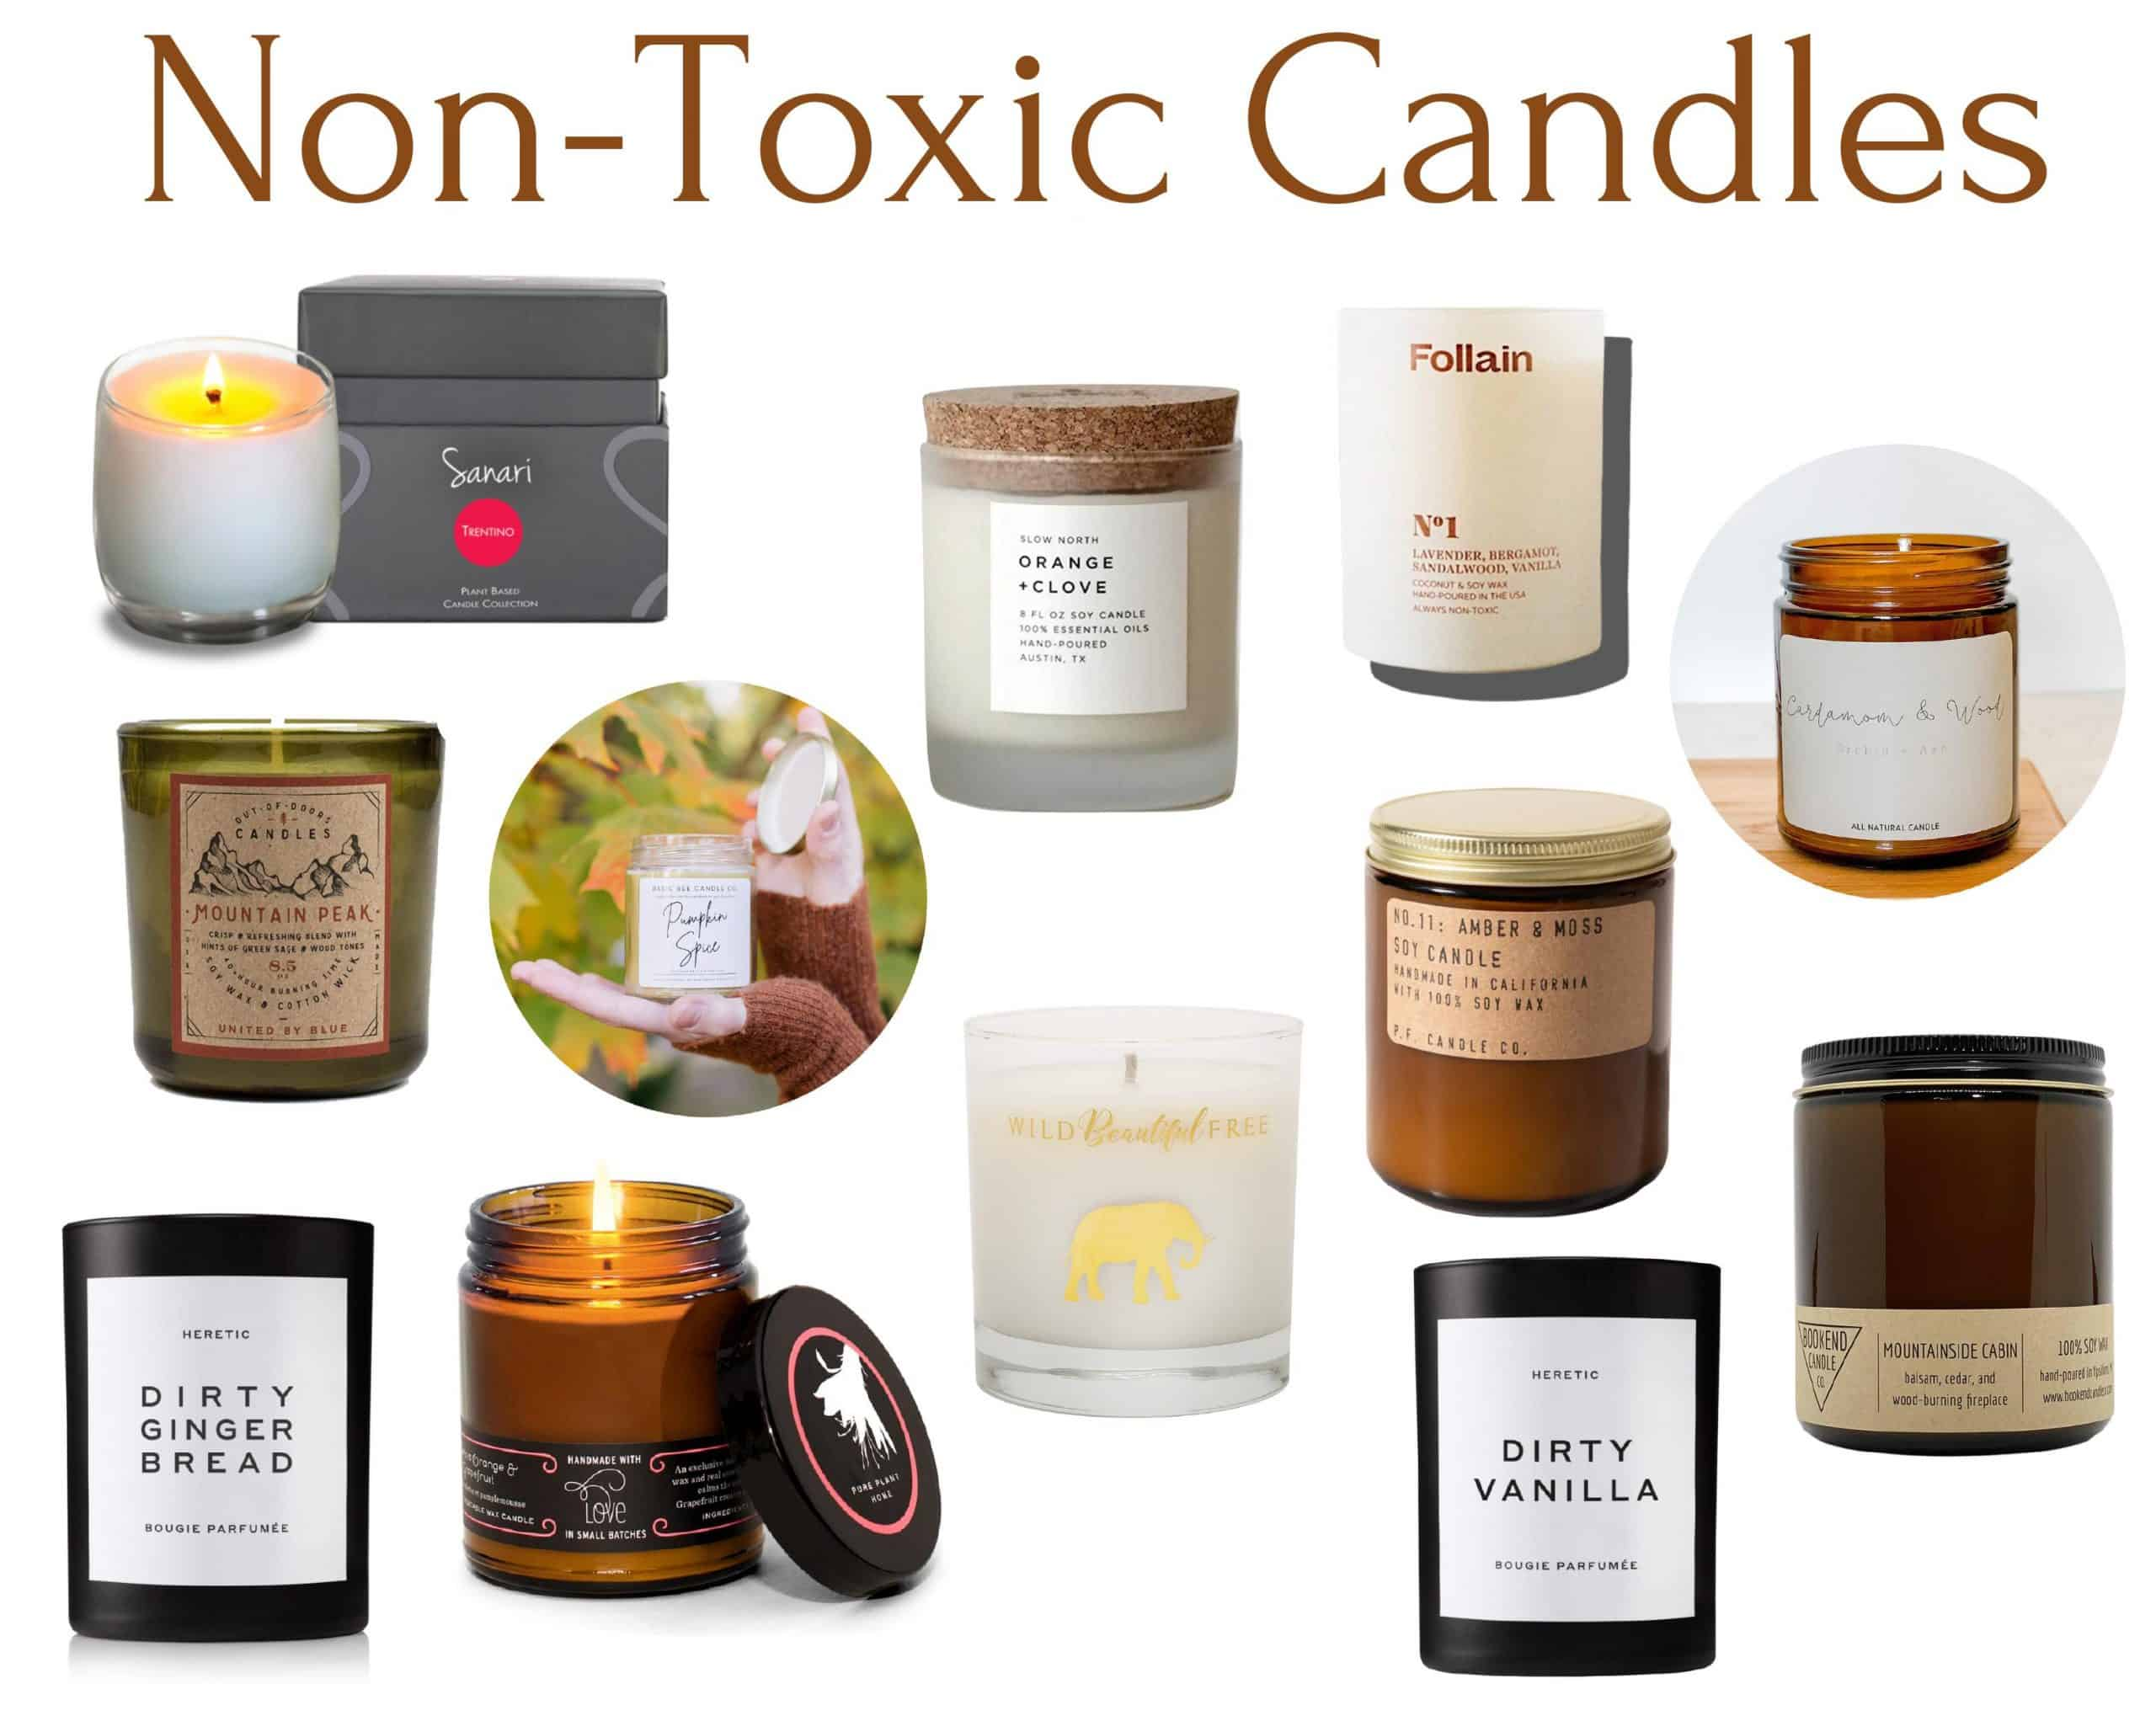 12 Brands of Non-Toxic Candles